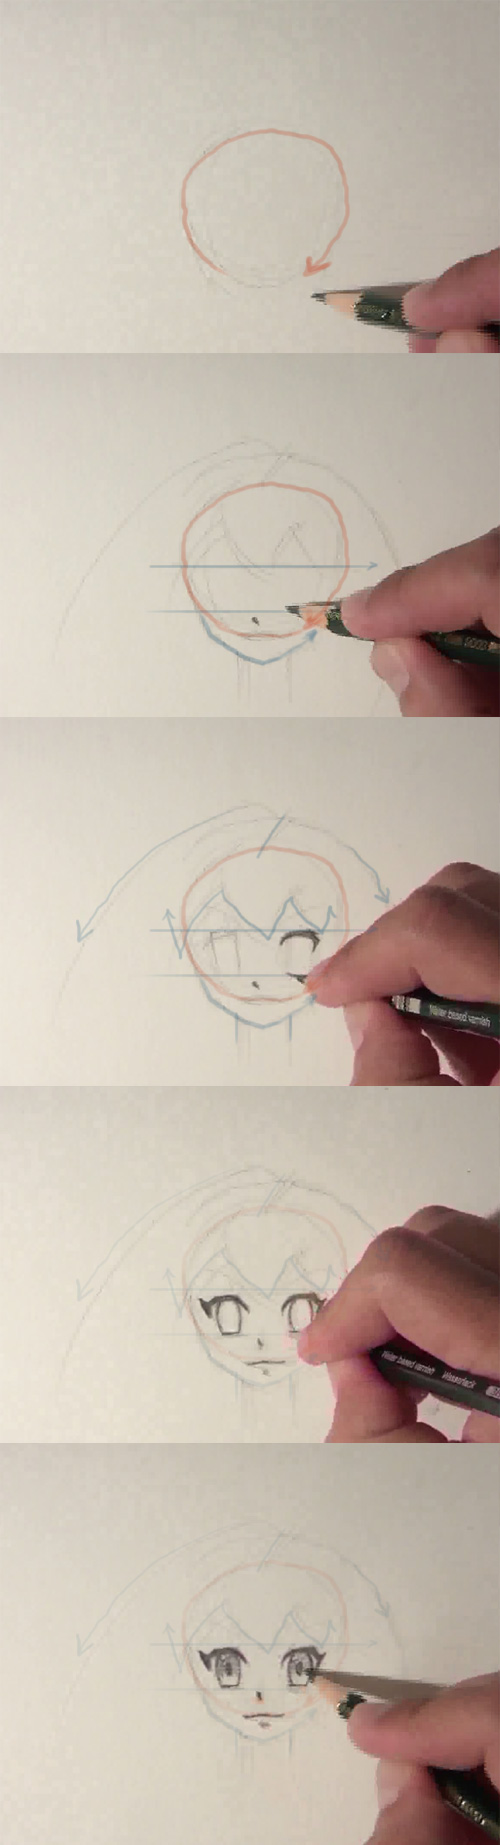 How to draw Anime girl face front view